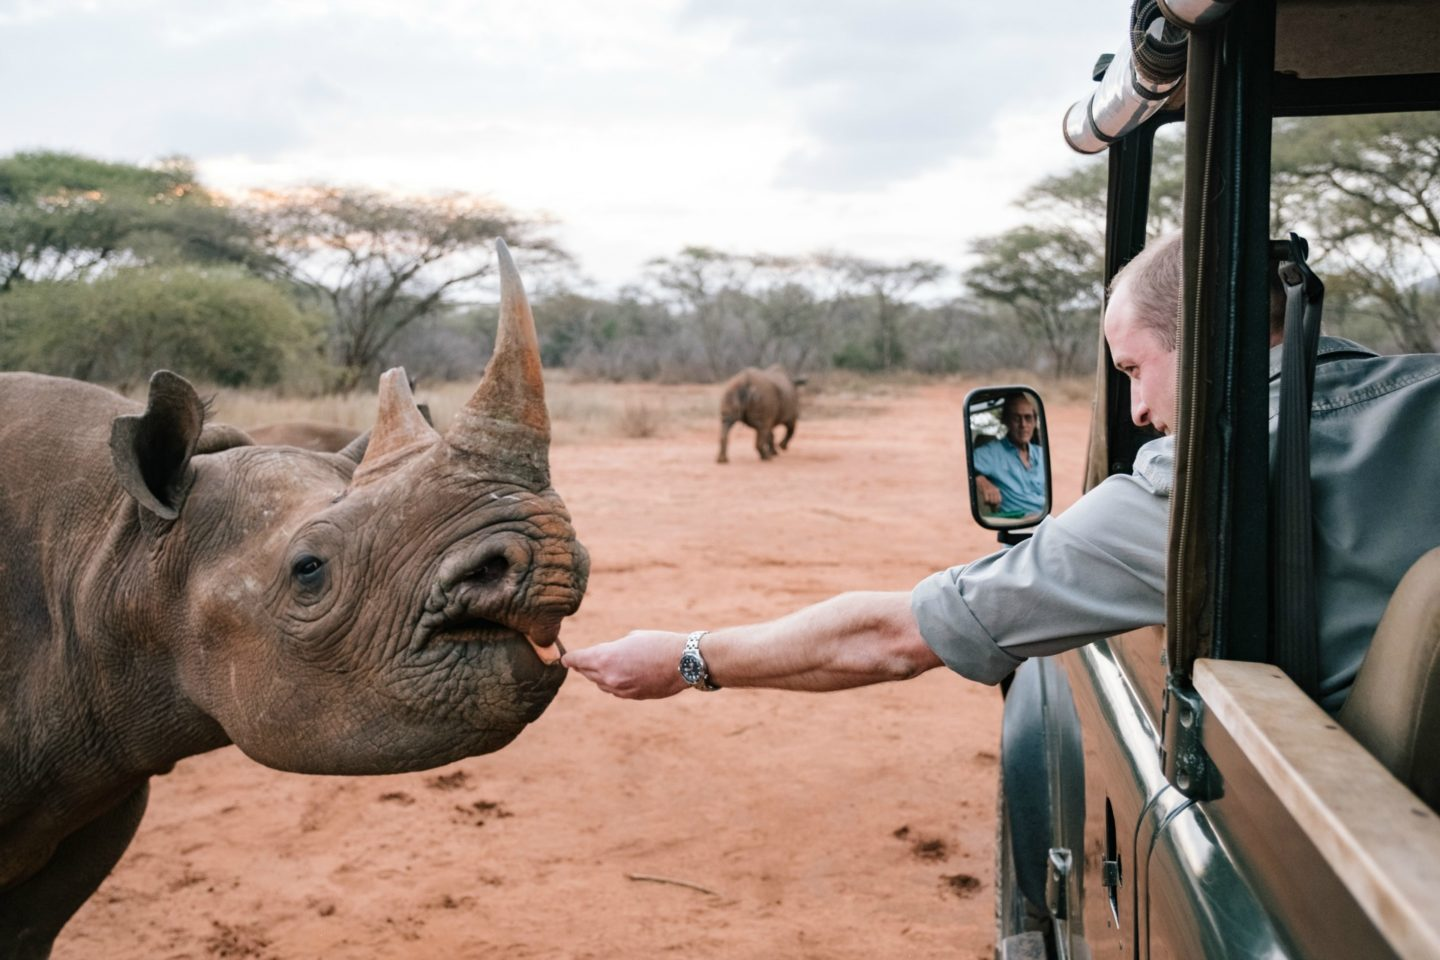 Source: HRH the Duke of Cambridge visited Mkomazi National Park to learn more about conservation efforts on the front line of a Tanzanian National Park. Mkomazi Rhino Sanctuary is working to establish a viable breeding population of 50 black rhino, whose offspring will be used to reinforce existing populations in Tanzania.  via Tusk.org